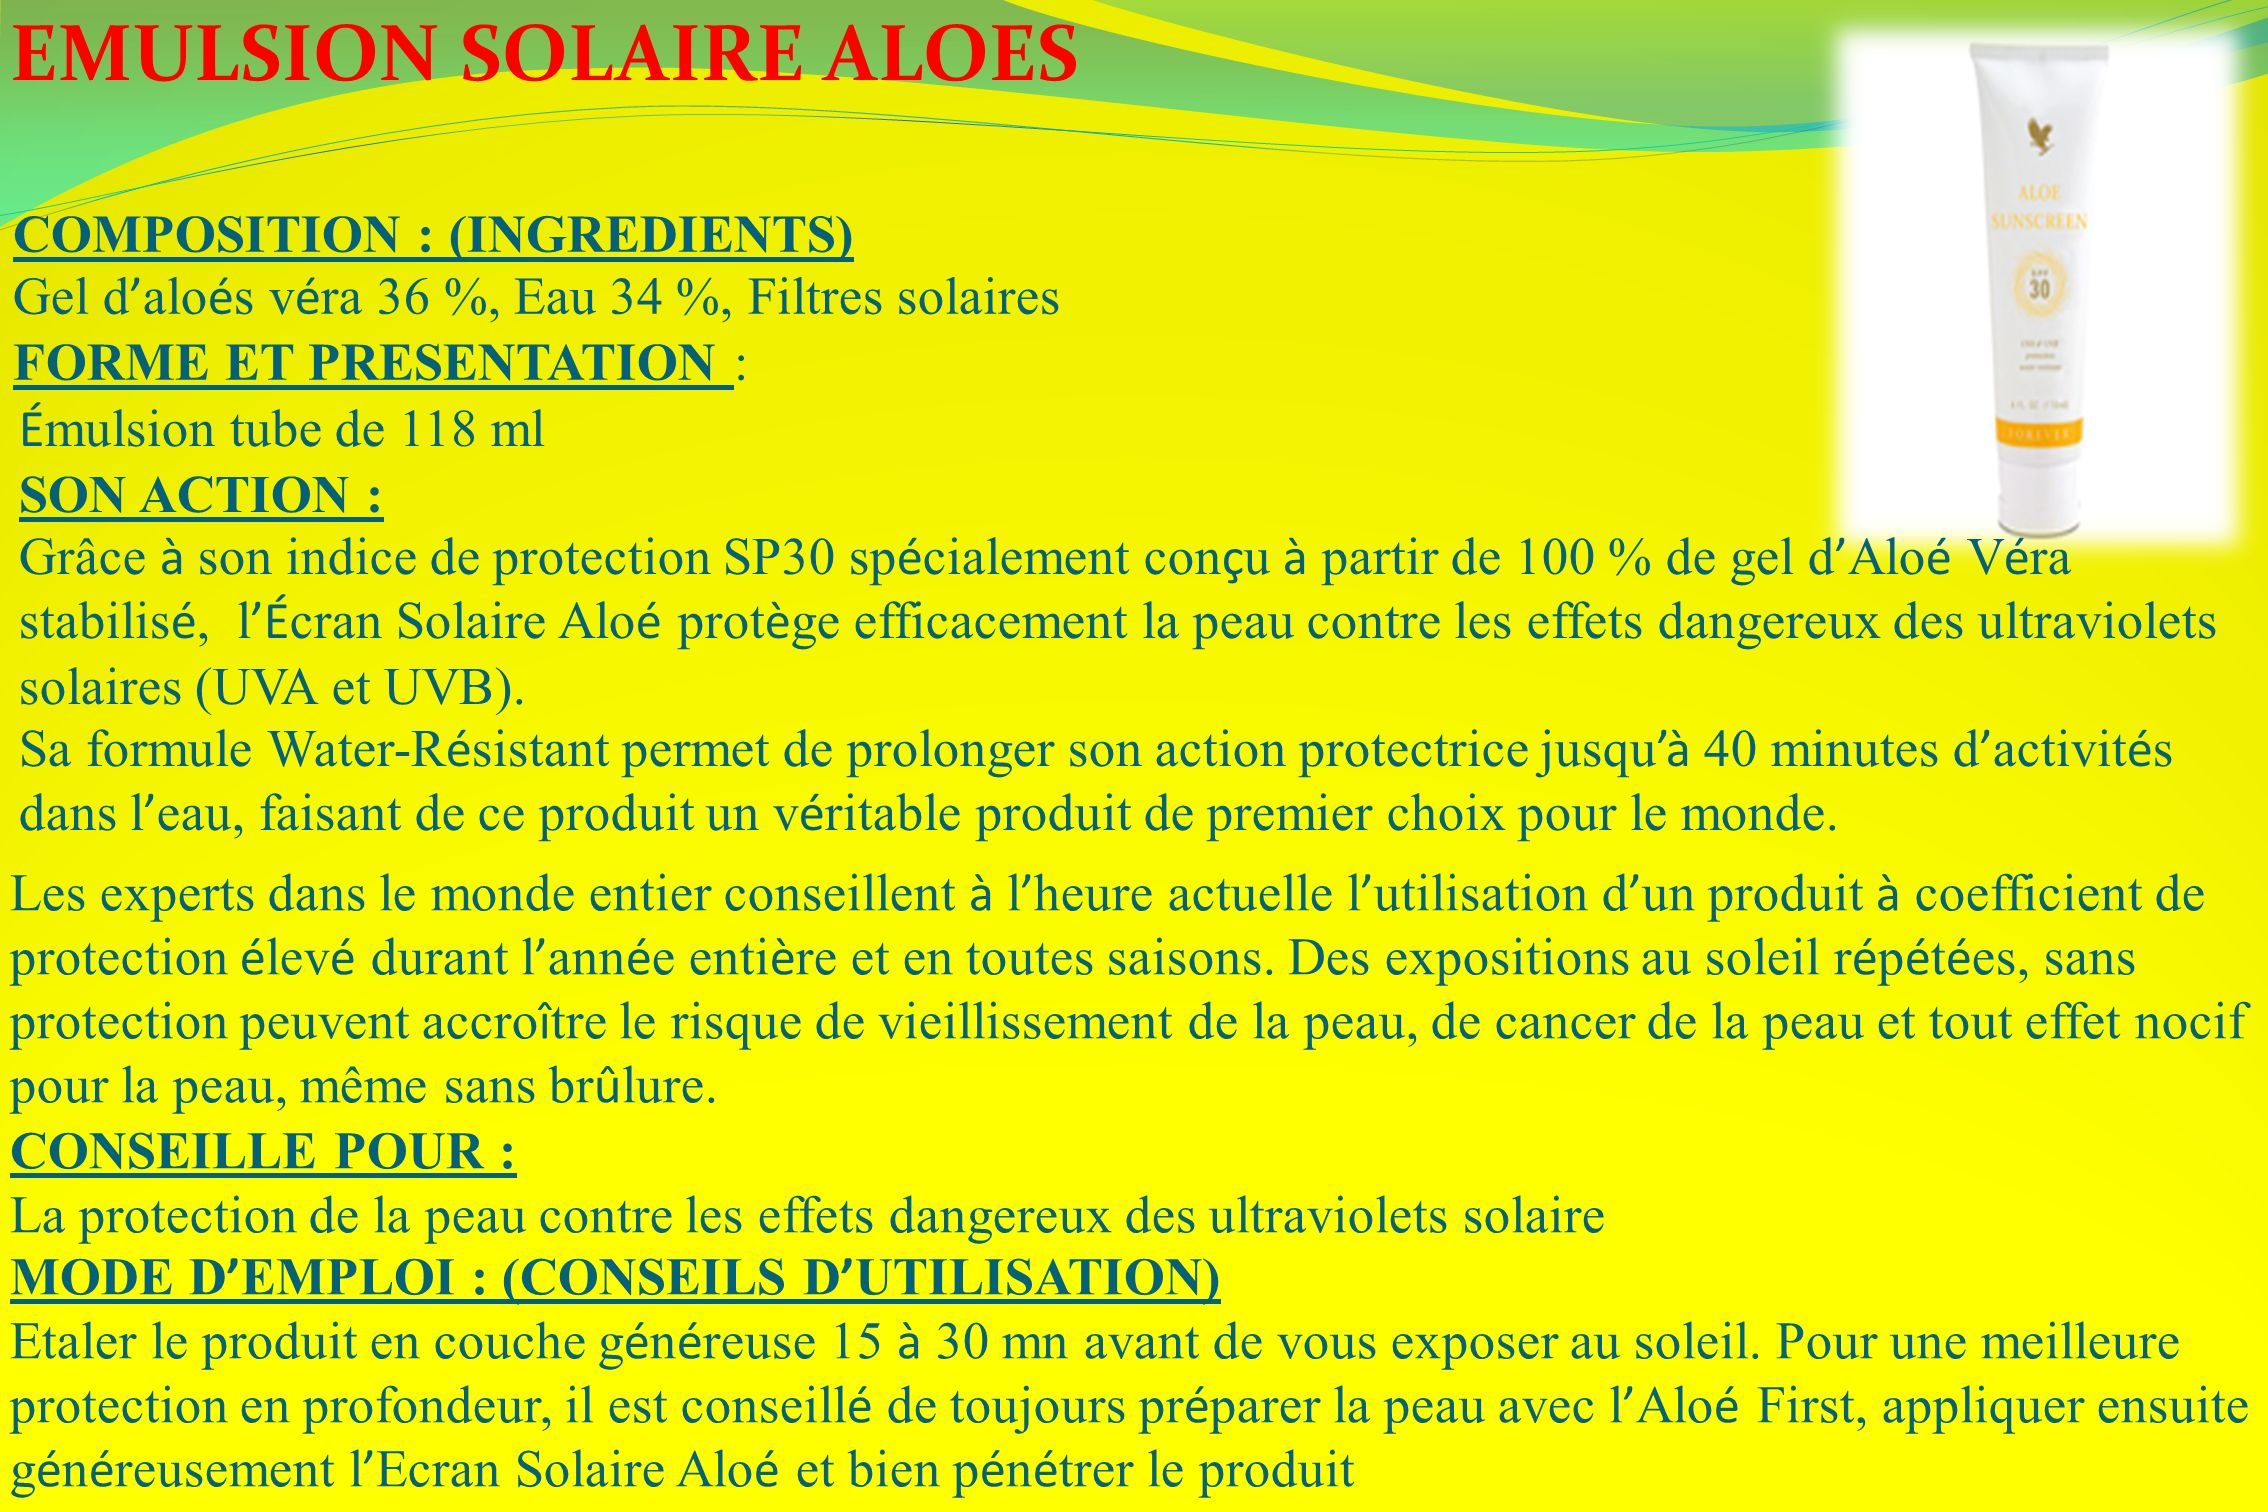 EMULSION SOLAIRE ALOES